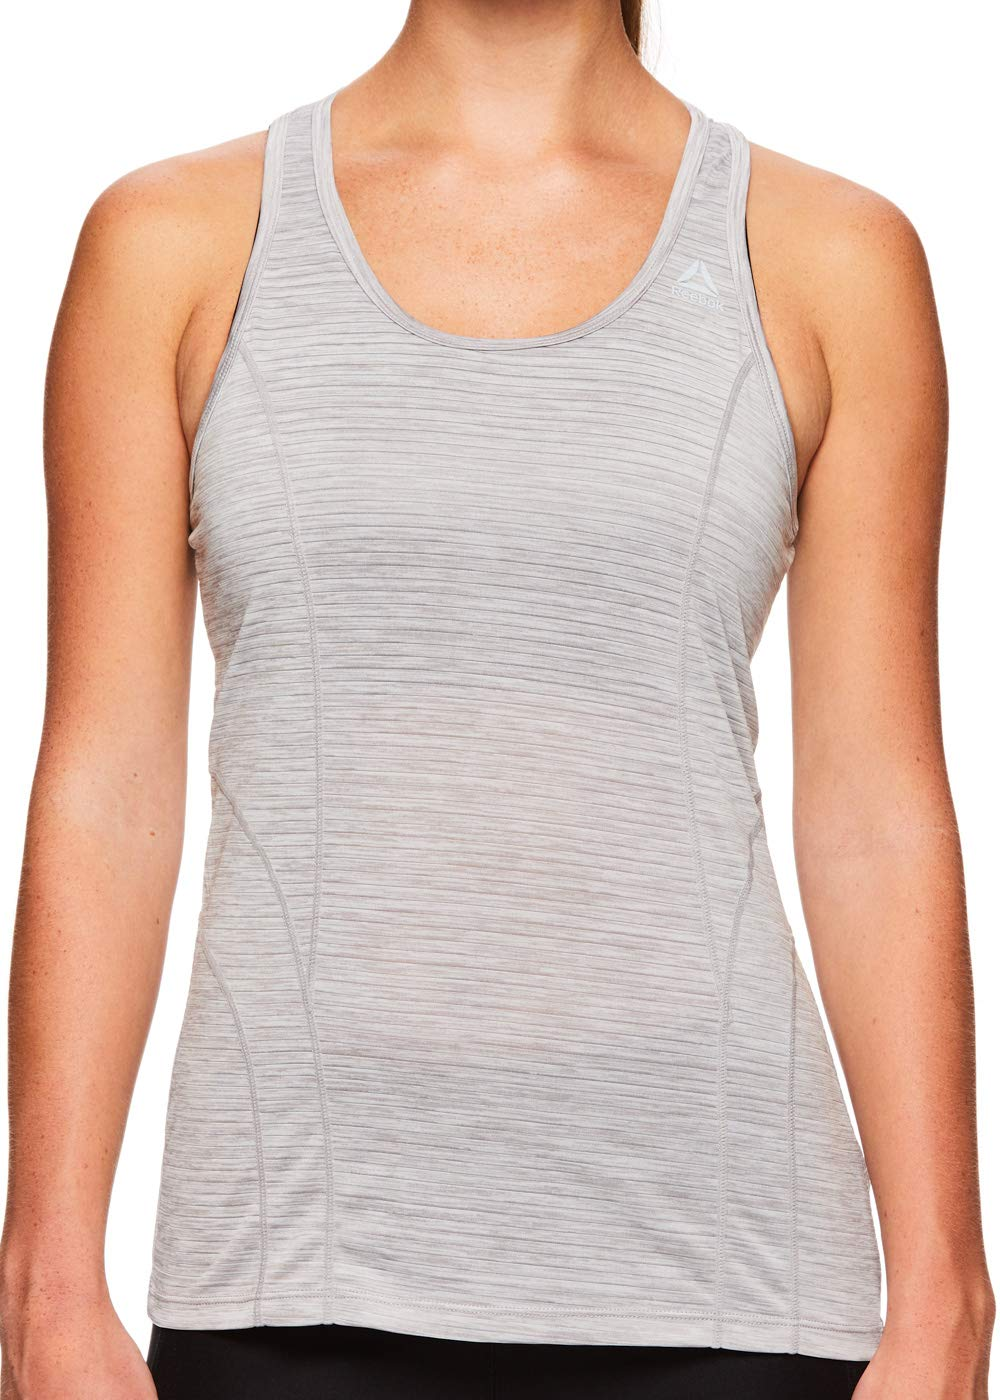 Reebok Women's Dynamic Fitted Performance Racerback Tank Top - Silver Sconce Heather, Small by Reebok (Image #4)